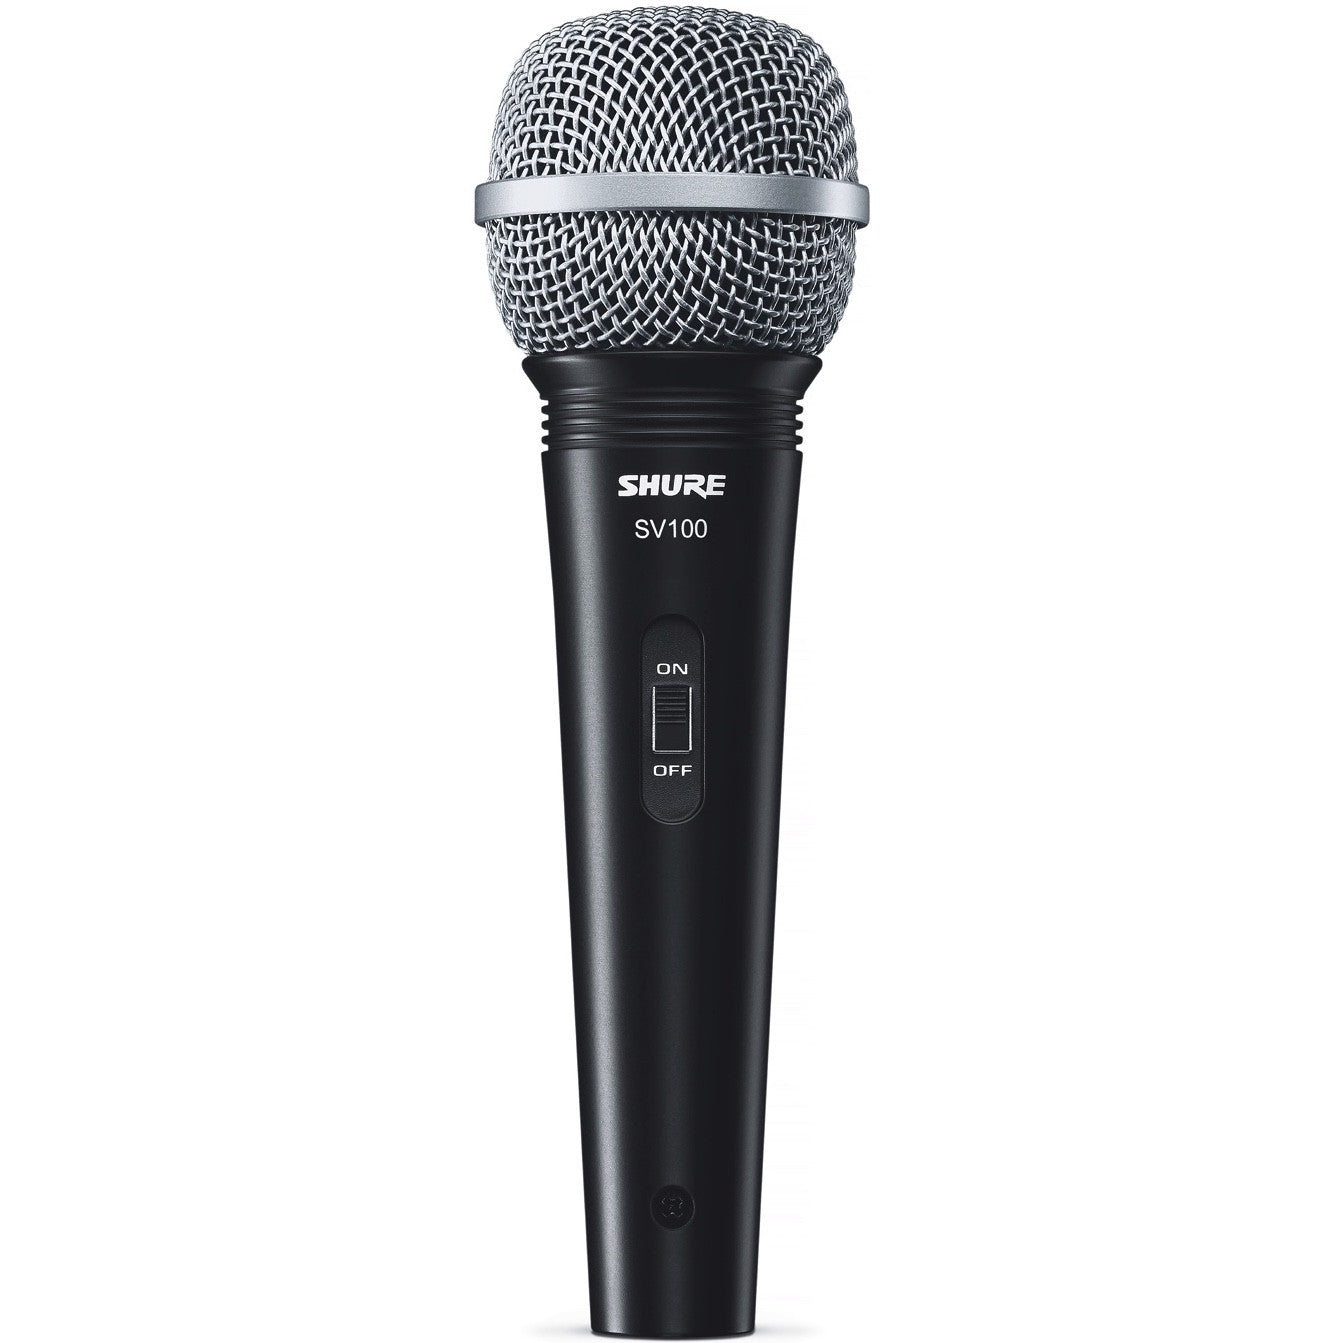 Shure SV100 Multi-Purpose Handheld Microphone | Music Experience | Shop Online | South Africa